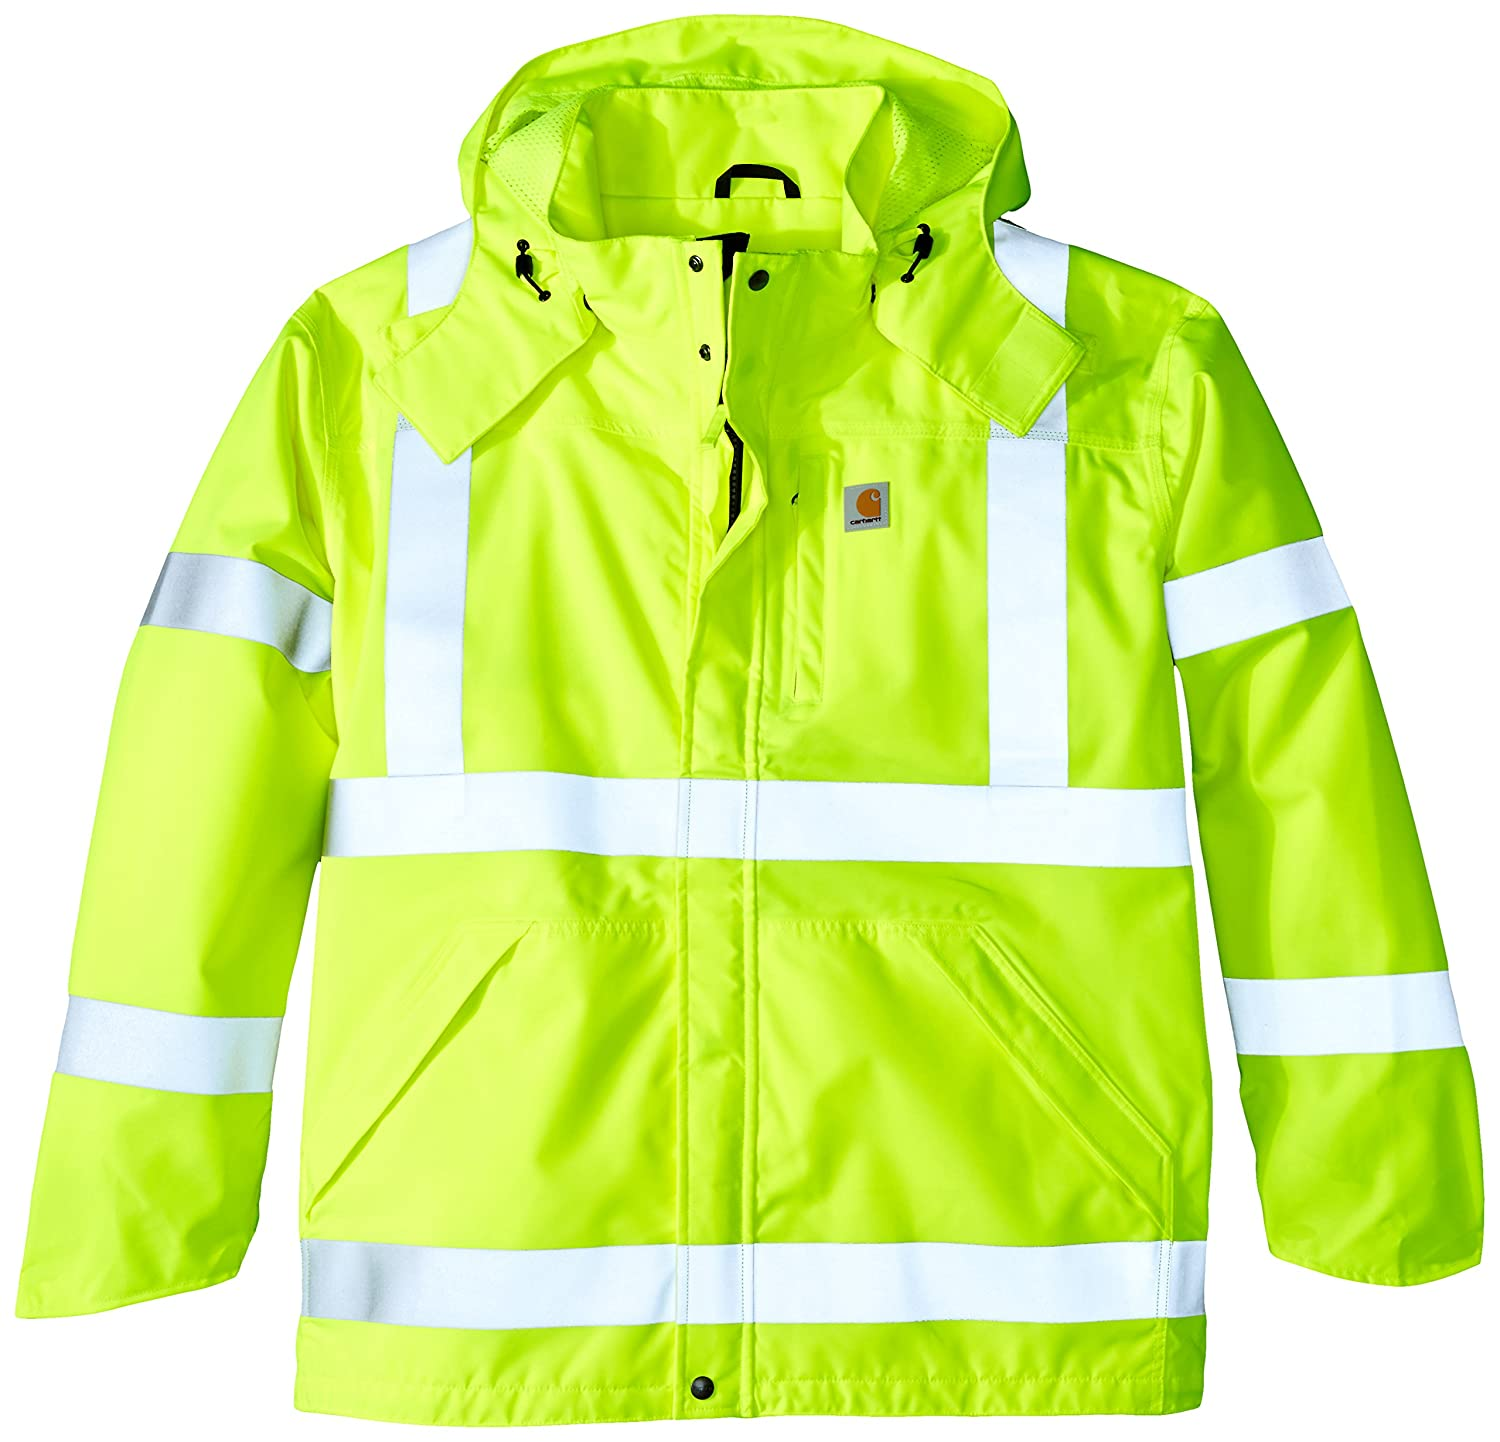 Carhartt Men's Big & Tall High Visibility Class 3 Waterproof Jacket Carhartt Sportswear - Mens 100499